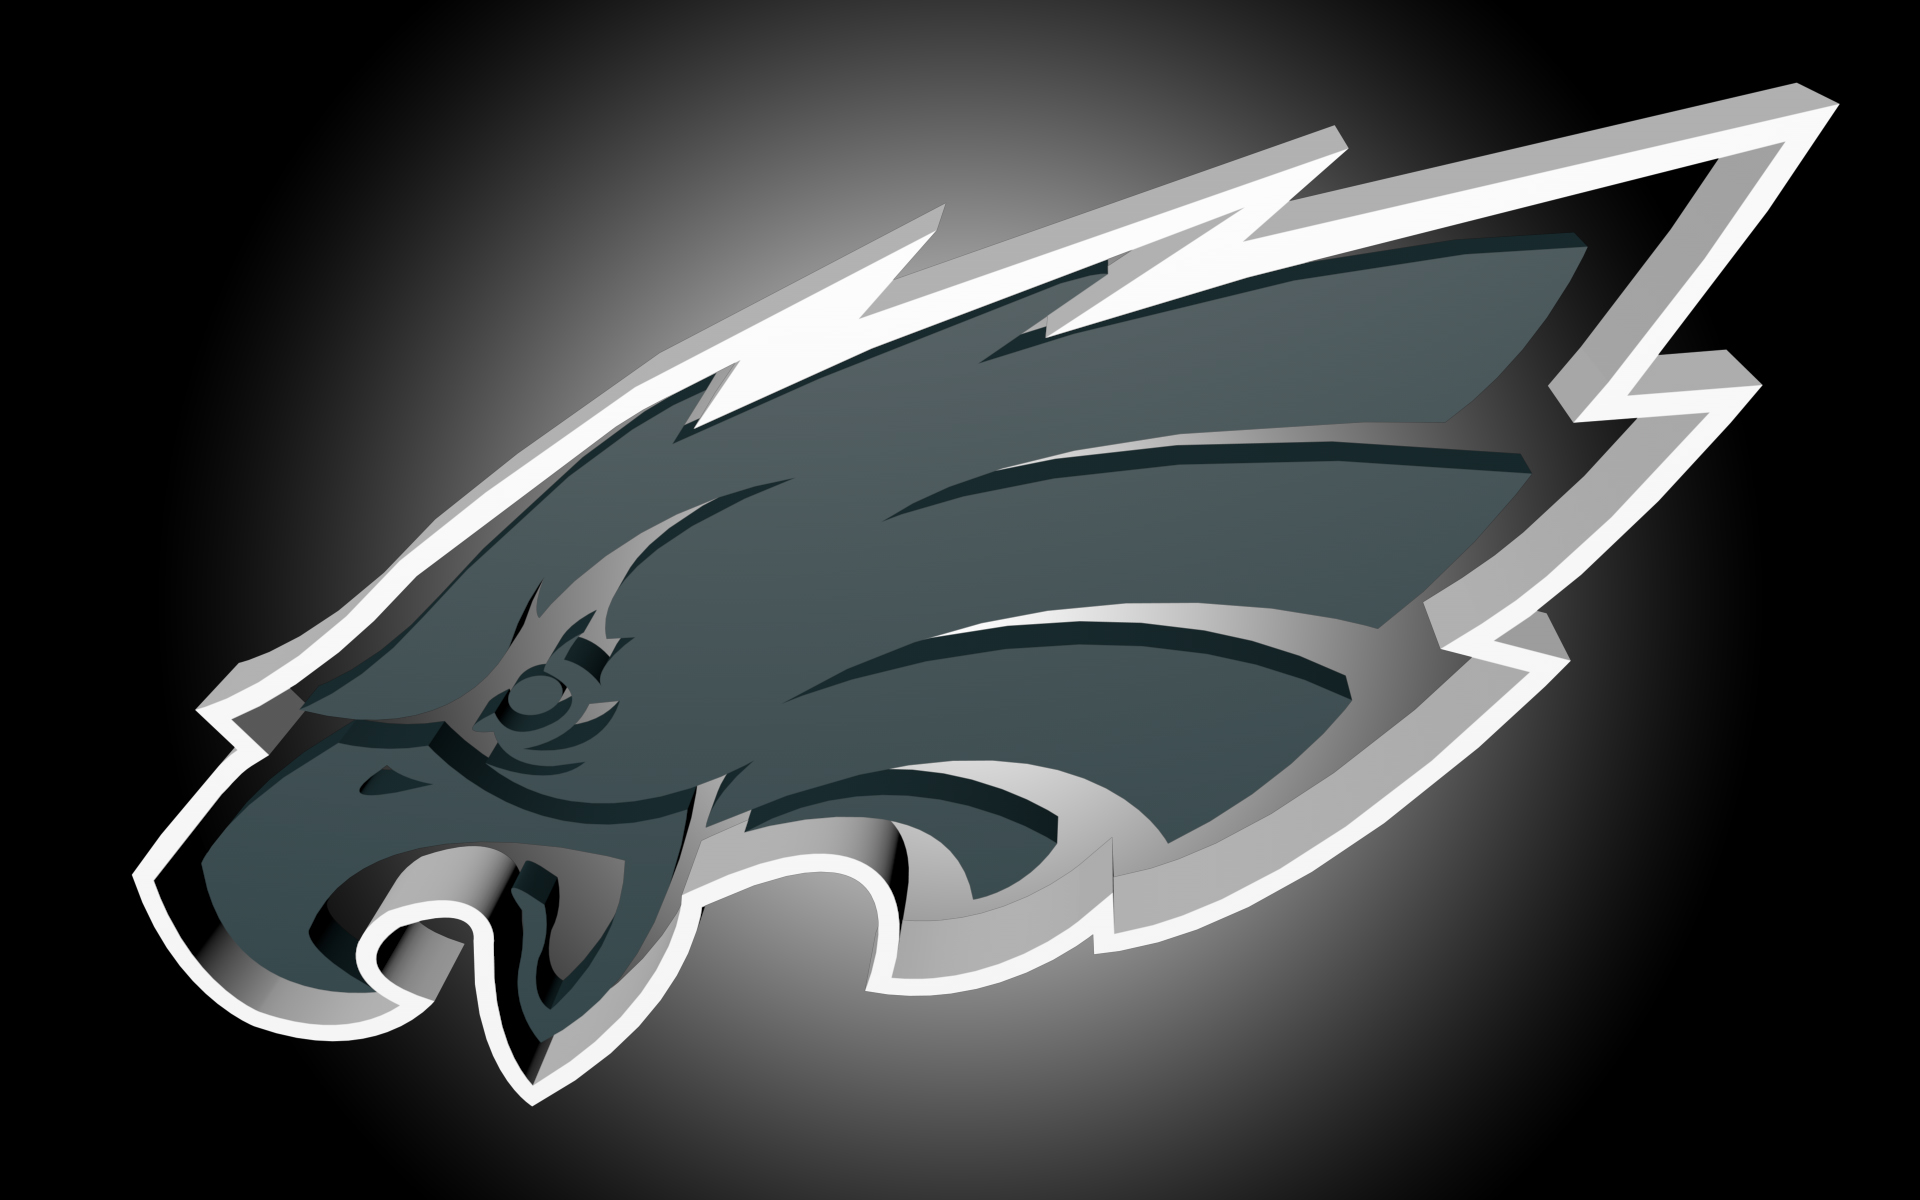 wallpaper eagles logo - photo #7